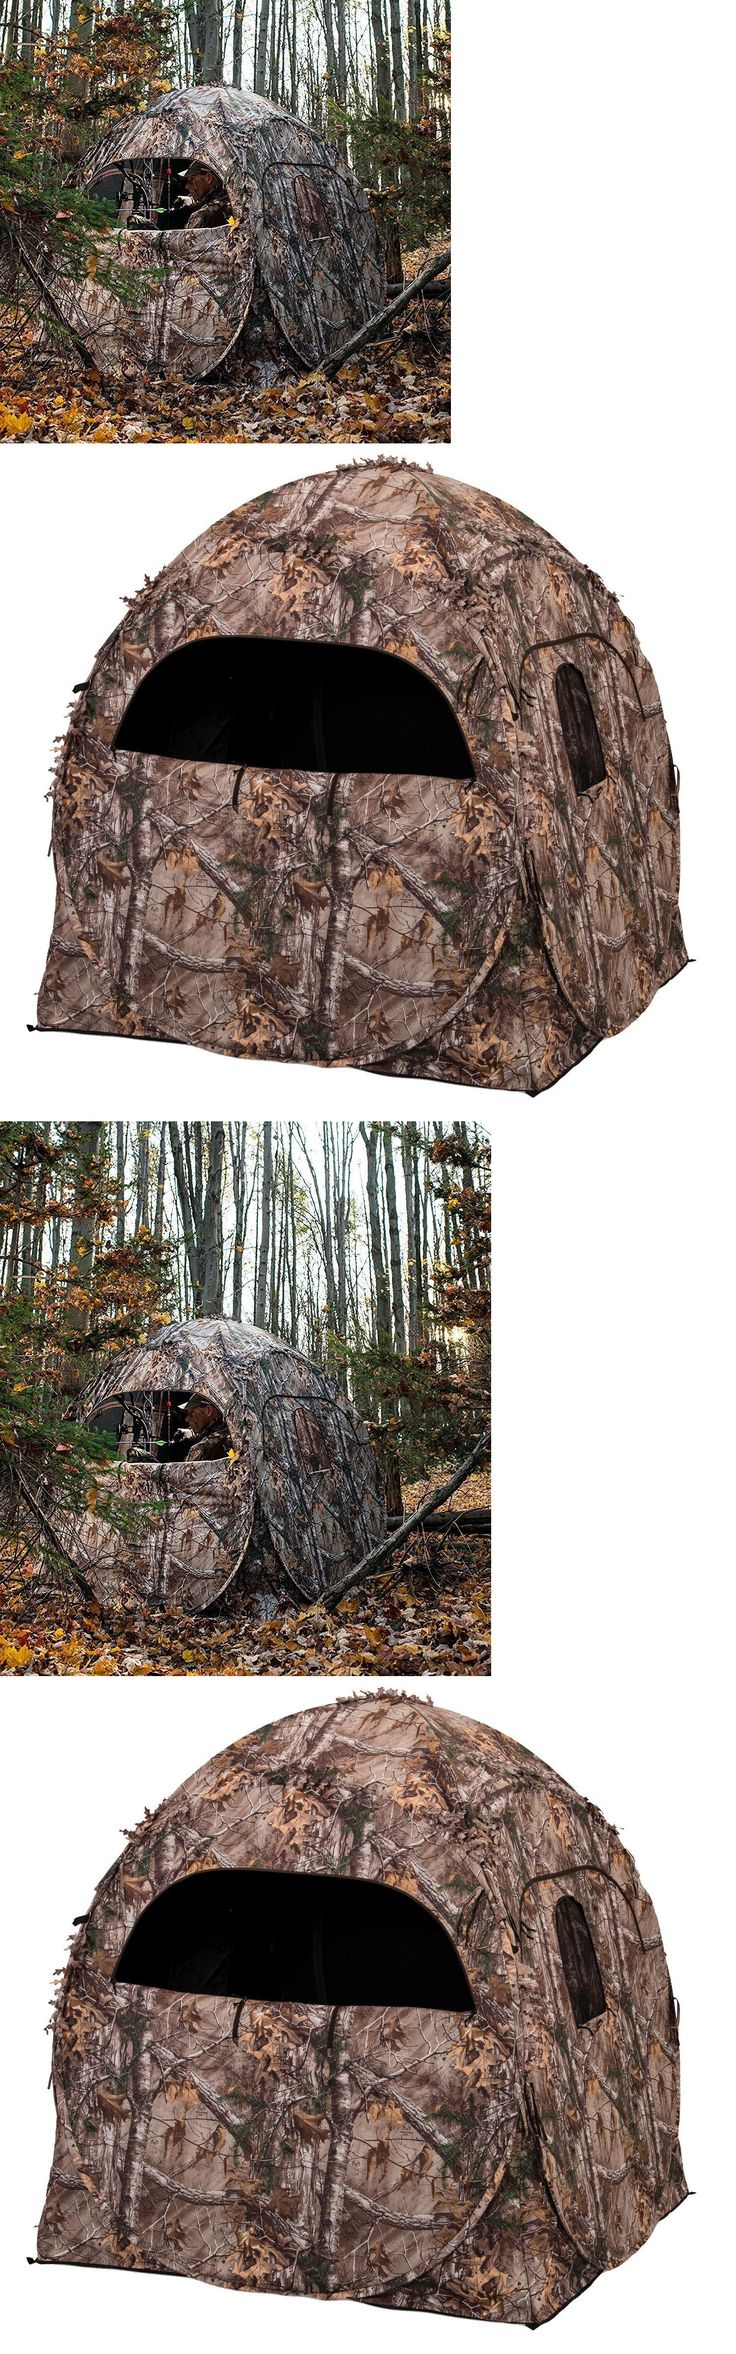 Blinds 177910: Camo Hunting Ground Blind Bird Watching Realtree Outdoor Gun Bow Deer Shooting -> BUY IT NOW ONLY: $76.07 on eBay!